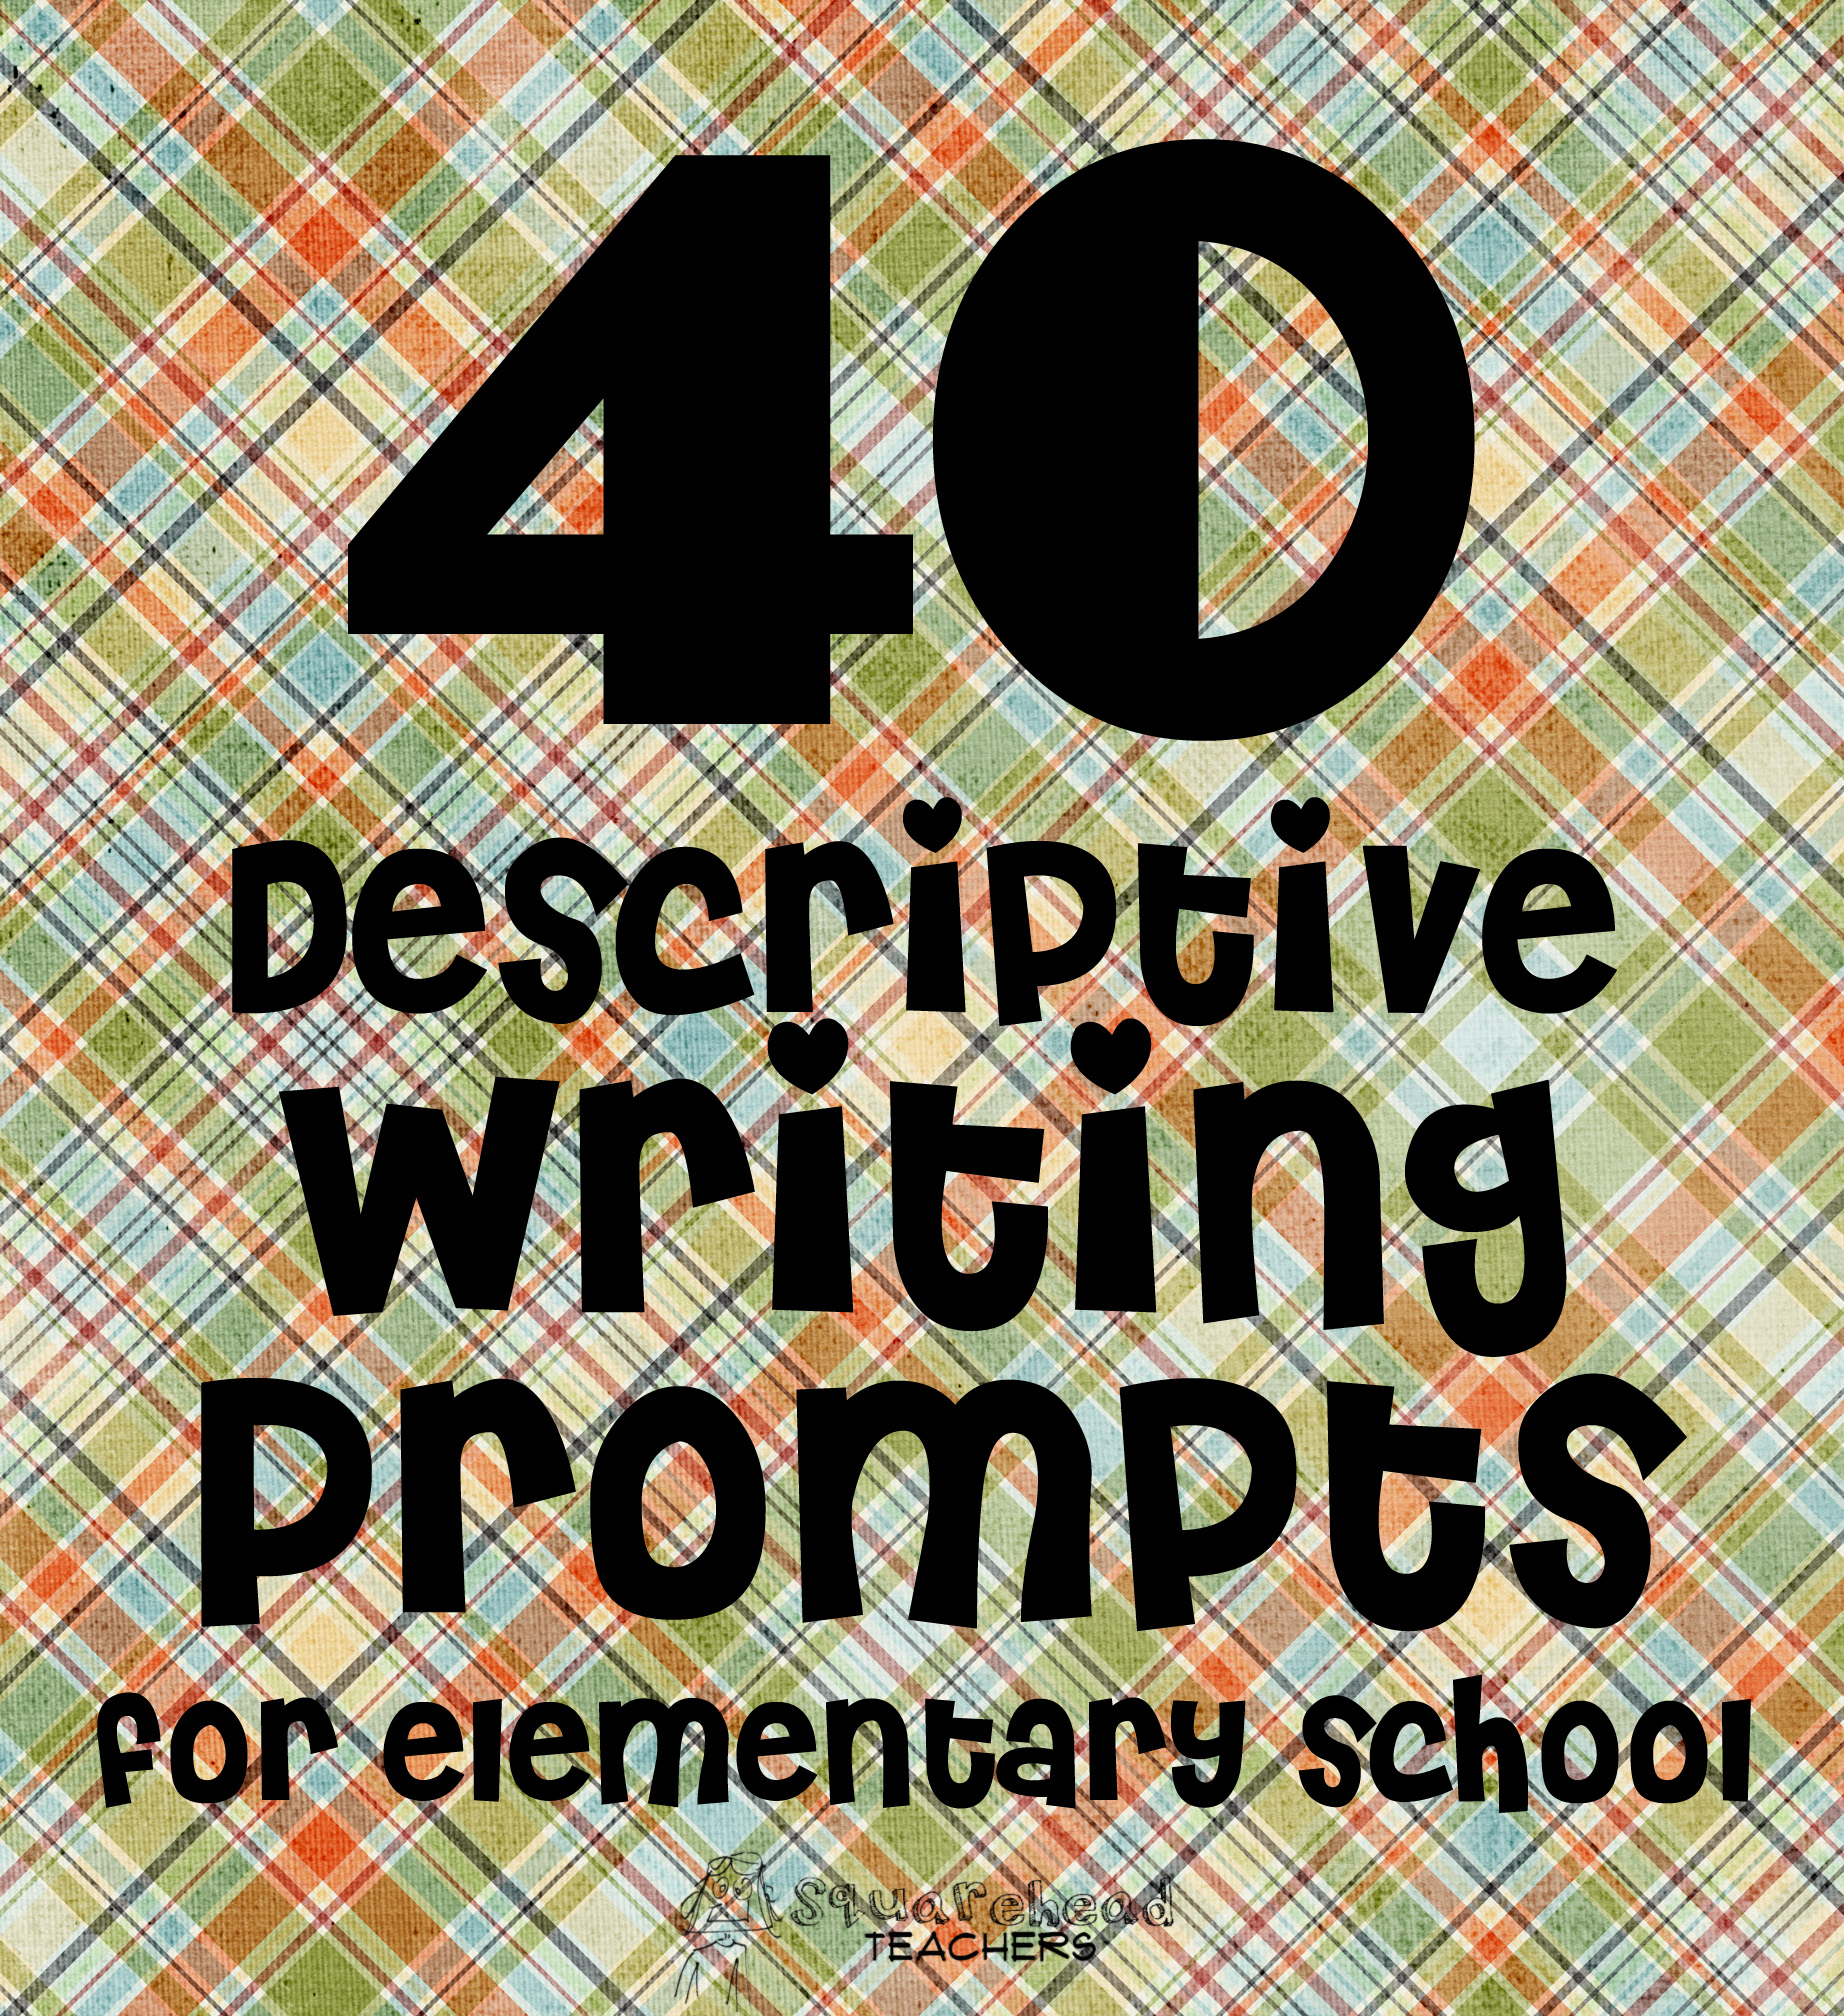 018 Descriptive Writing Prompts For Elem School Uw Essay Fascinating University Of Wisconsin Whitewater Prompt System Full